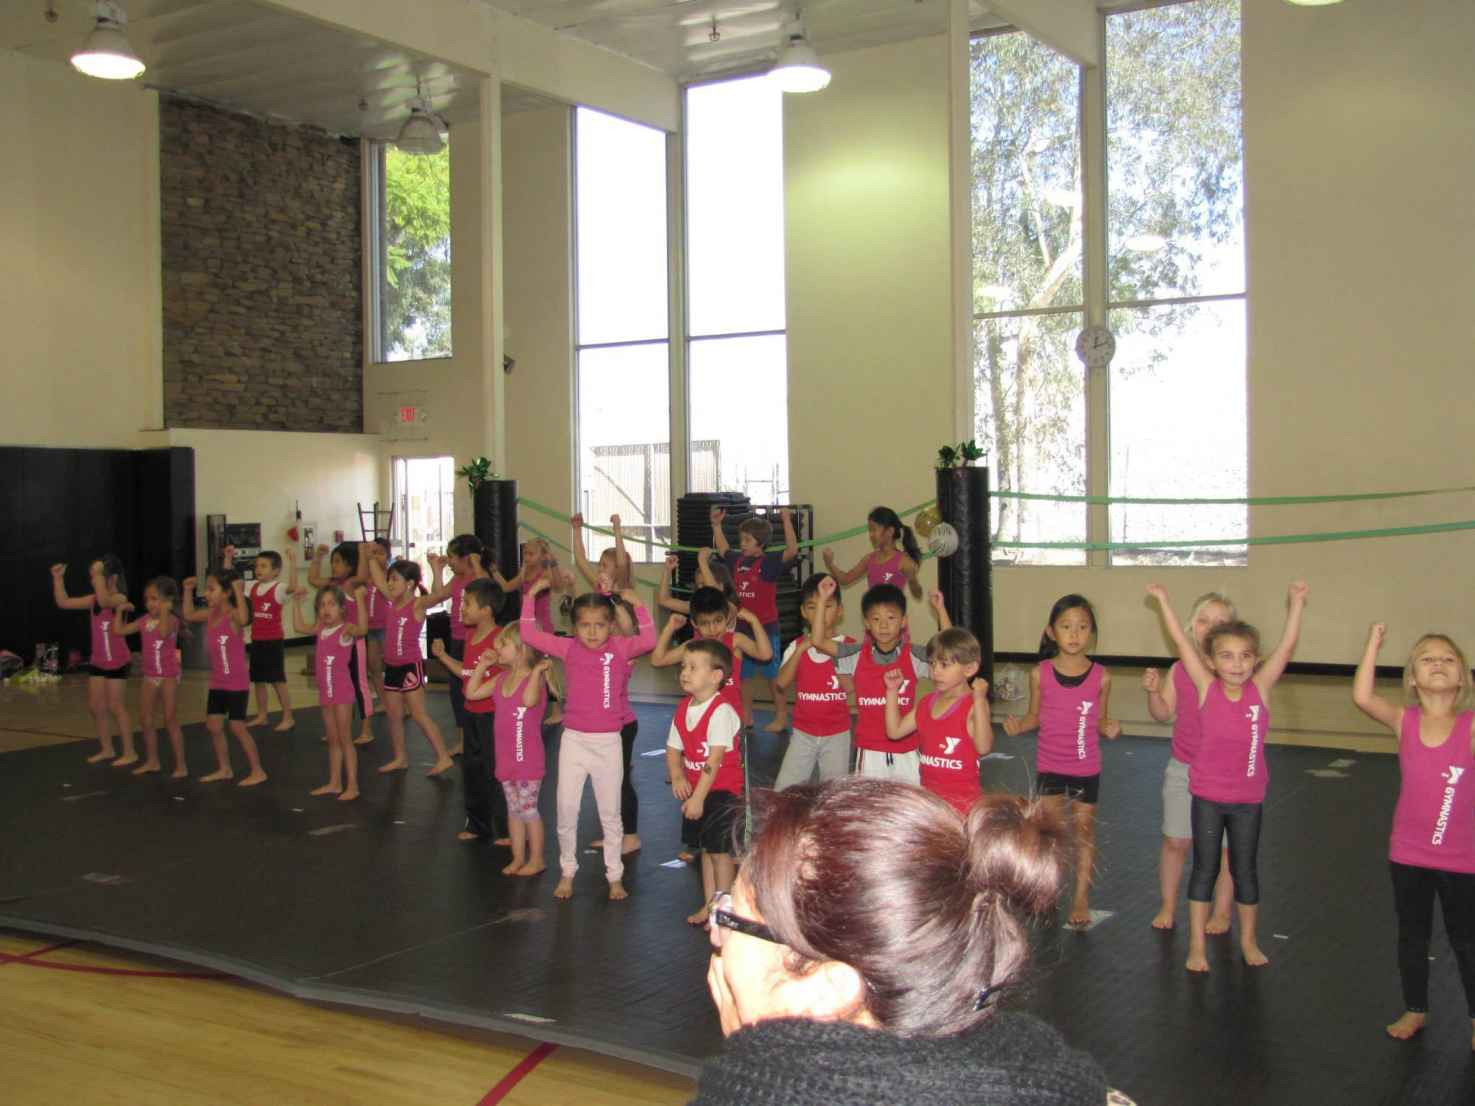 Youth Gymnastics at the Fullerton Family YMCA